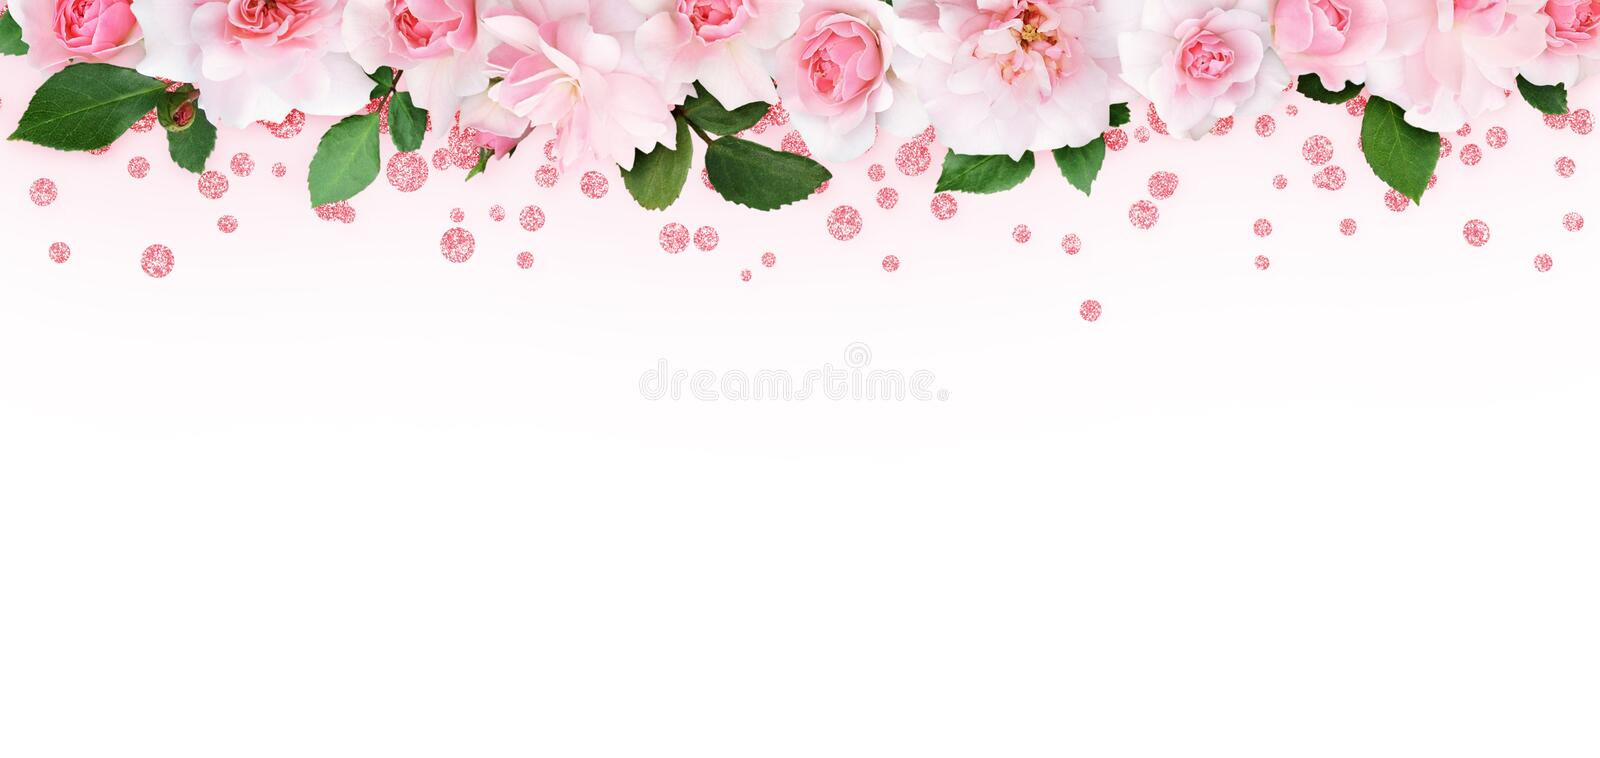 Pink rose flowers and leaves in a top border with glitter confetti. On white background royalty free stock image